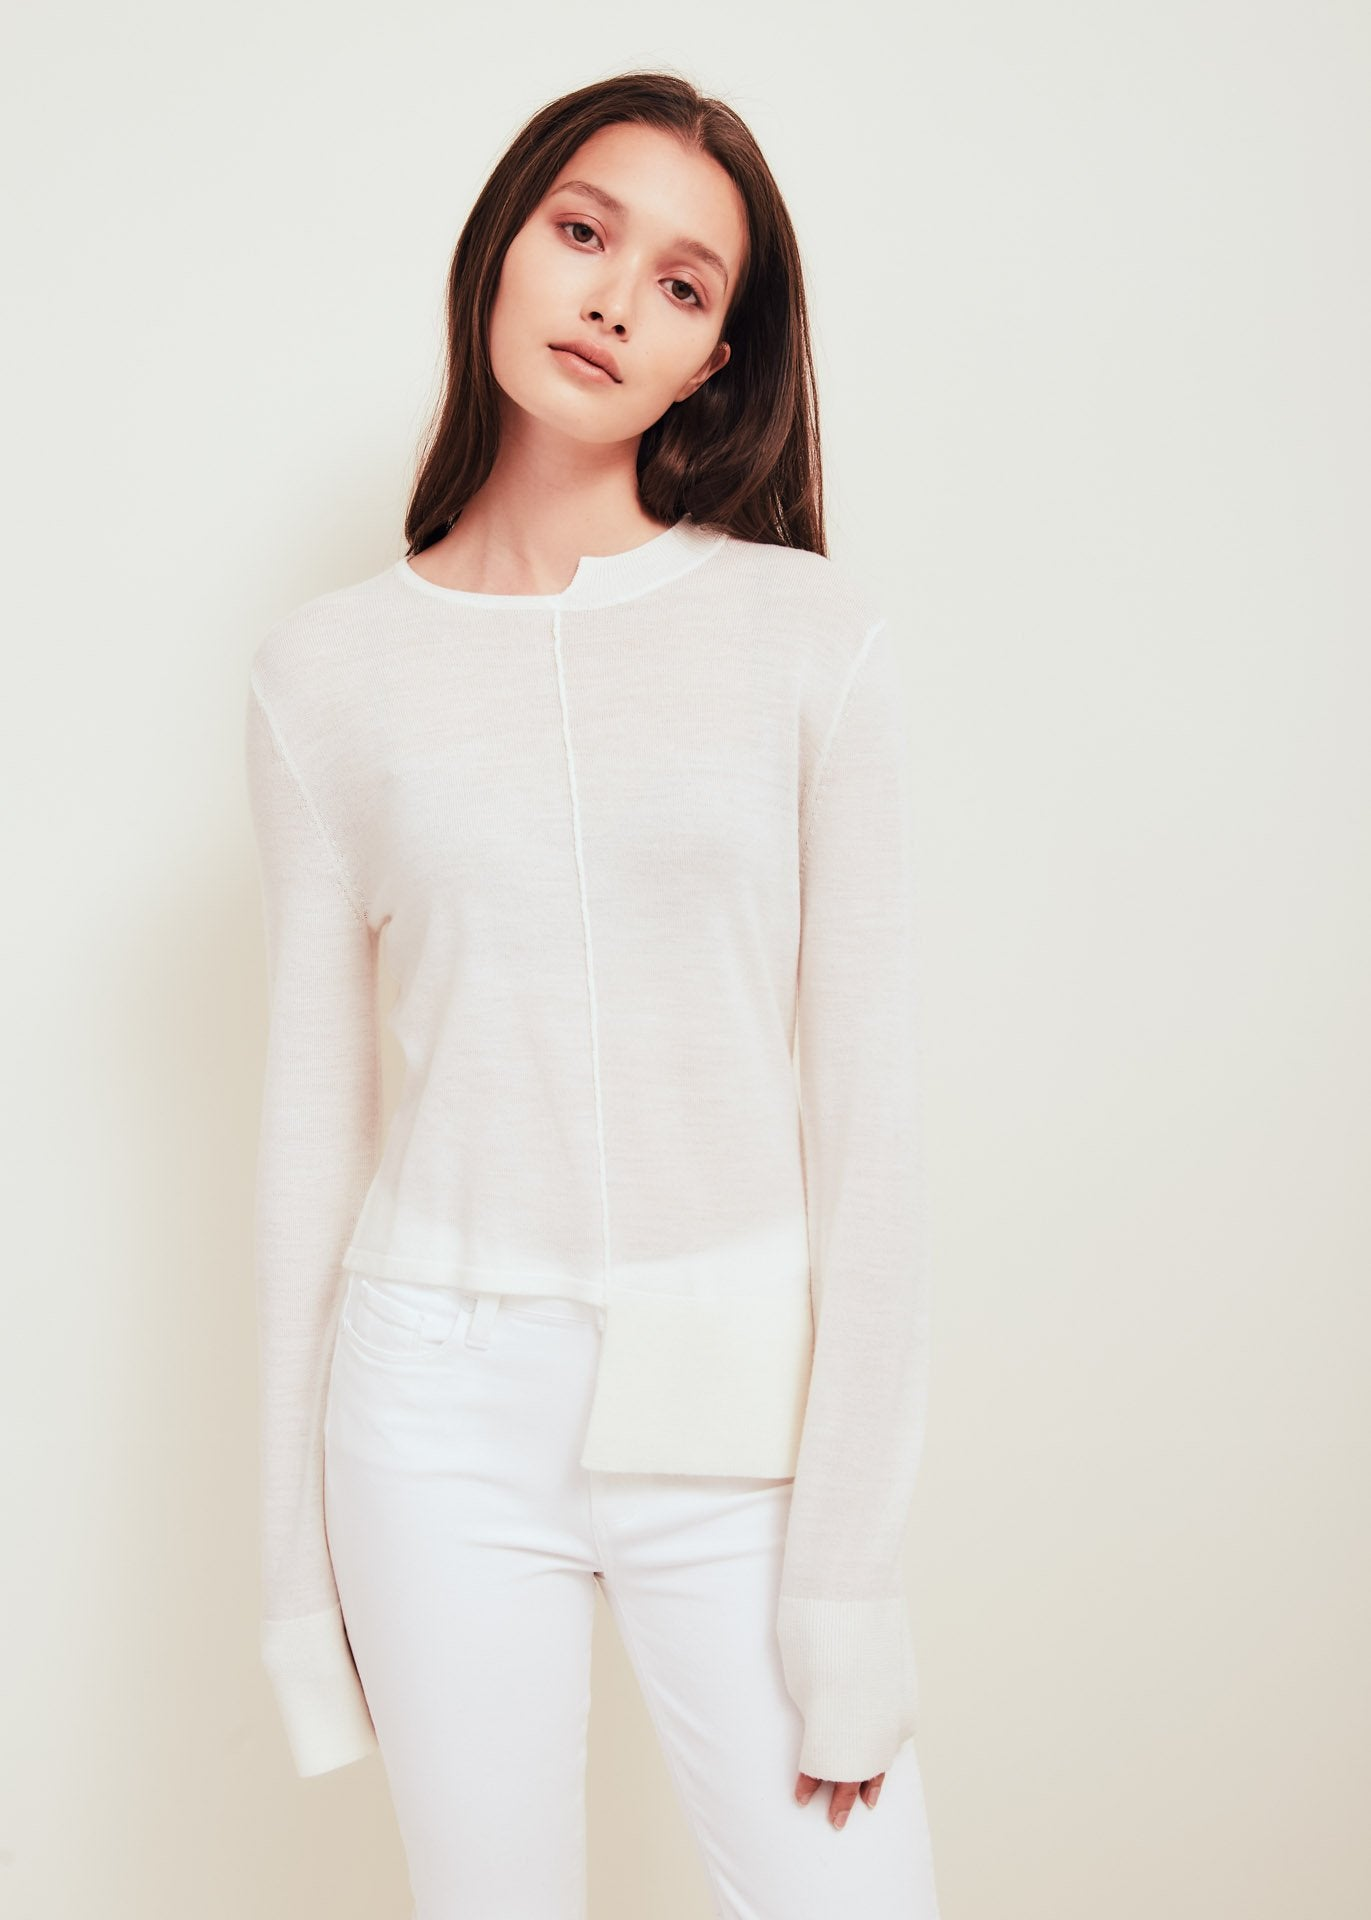 White Fine Merino Wool Crew Neck Sweater - Stephie